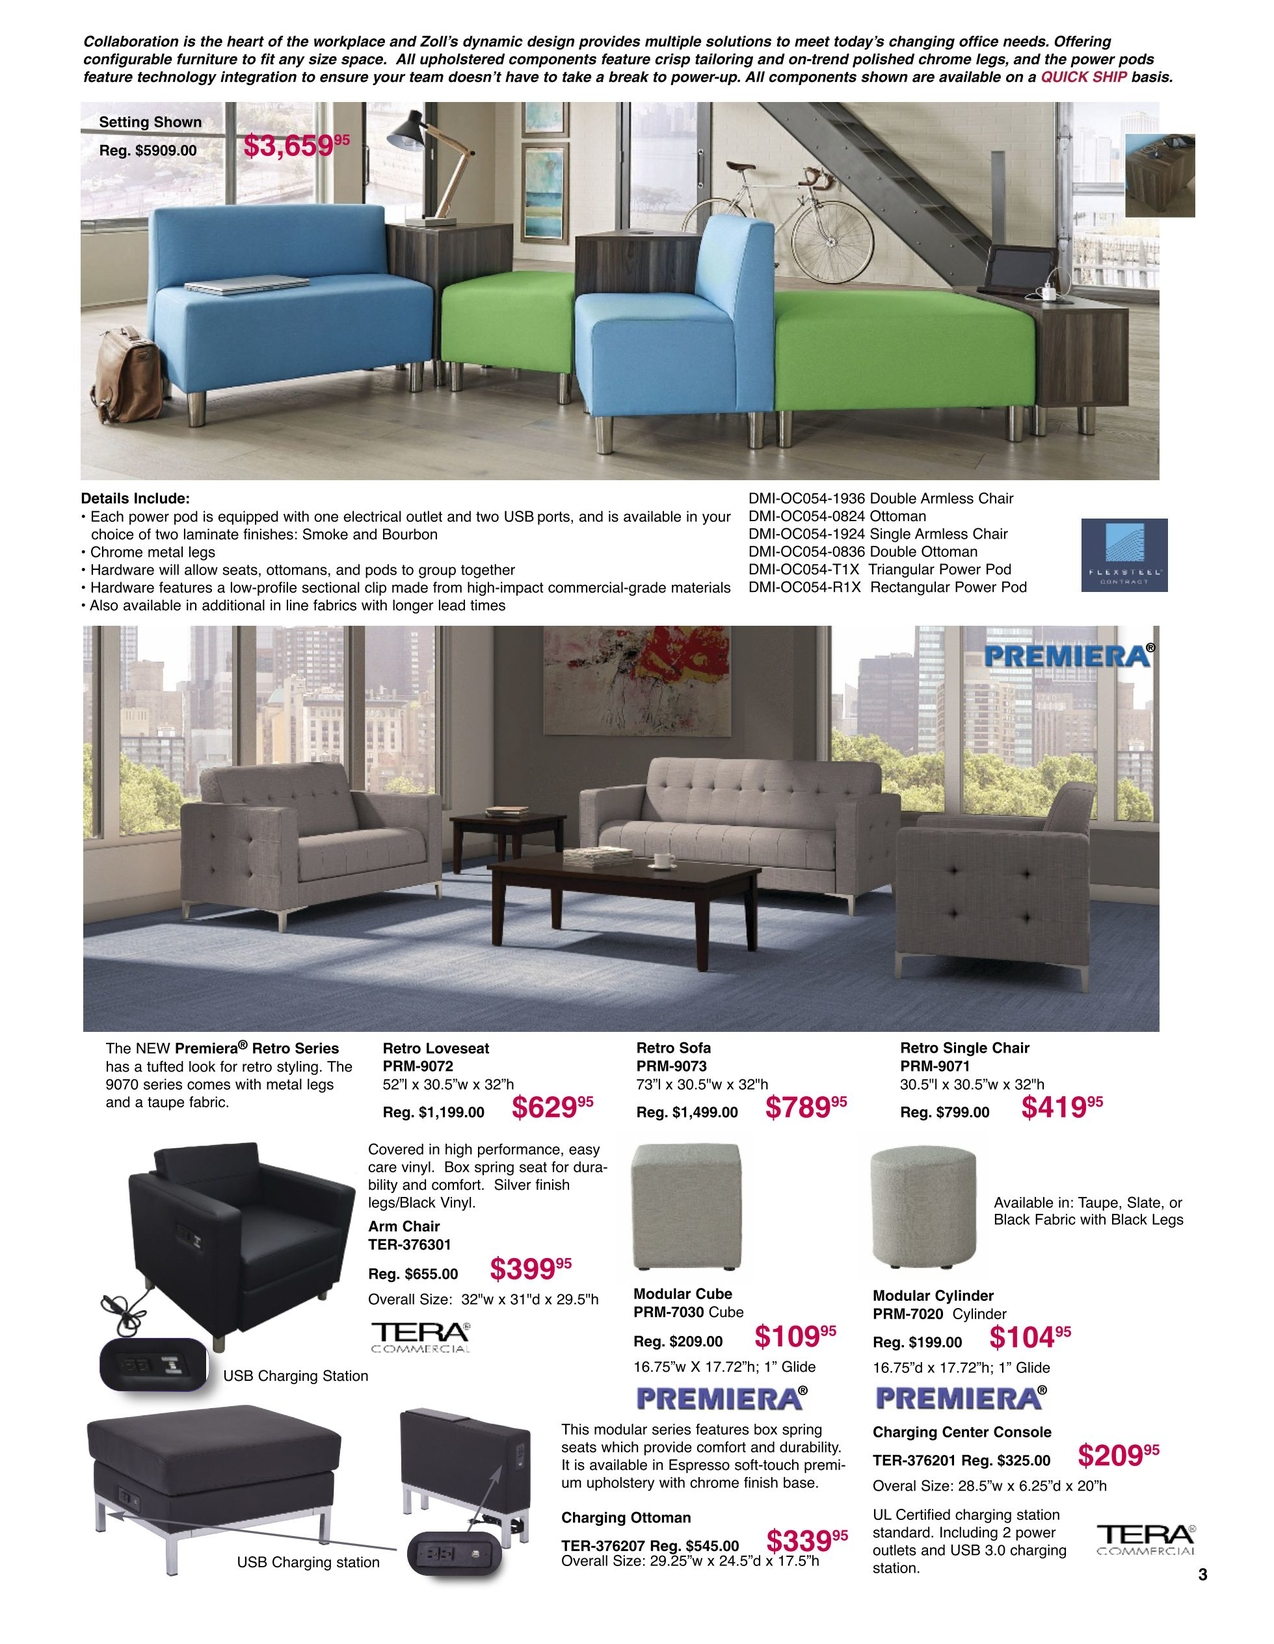 3 in one high chair plans vanguard furniture chairs quarterly flyer october 2017